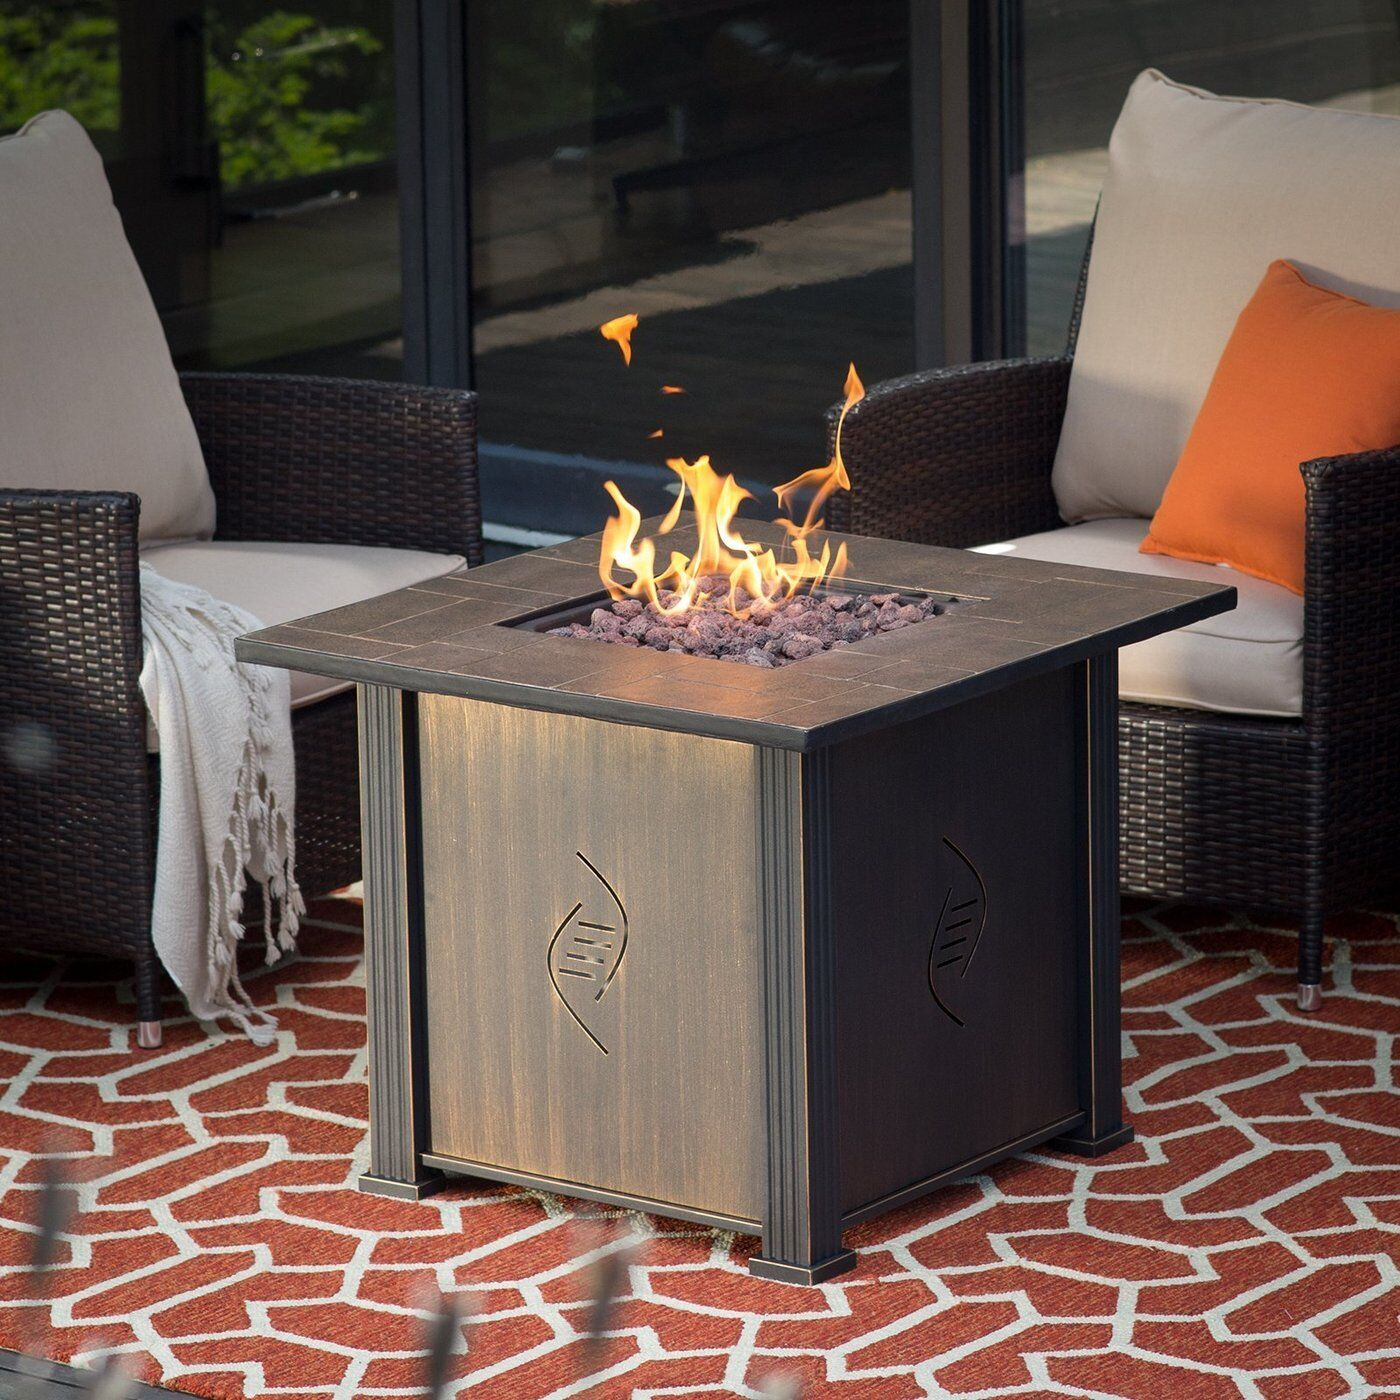 Fire Pit Table Burner Patio Deck Outdoor Fireplace Propane Rustic